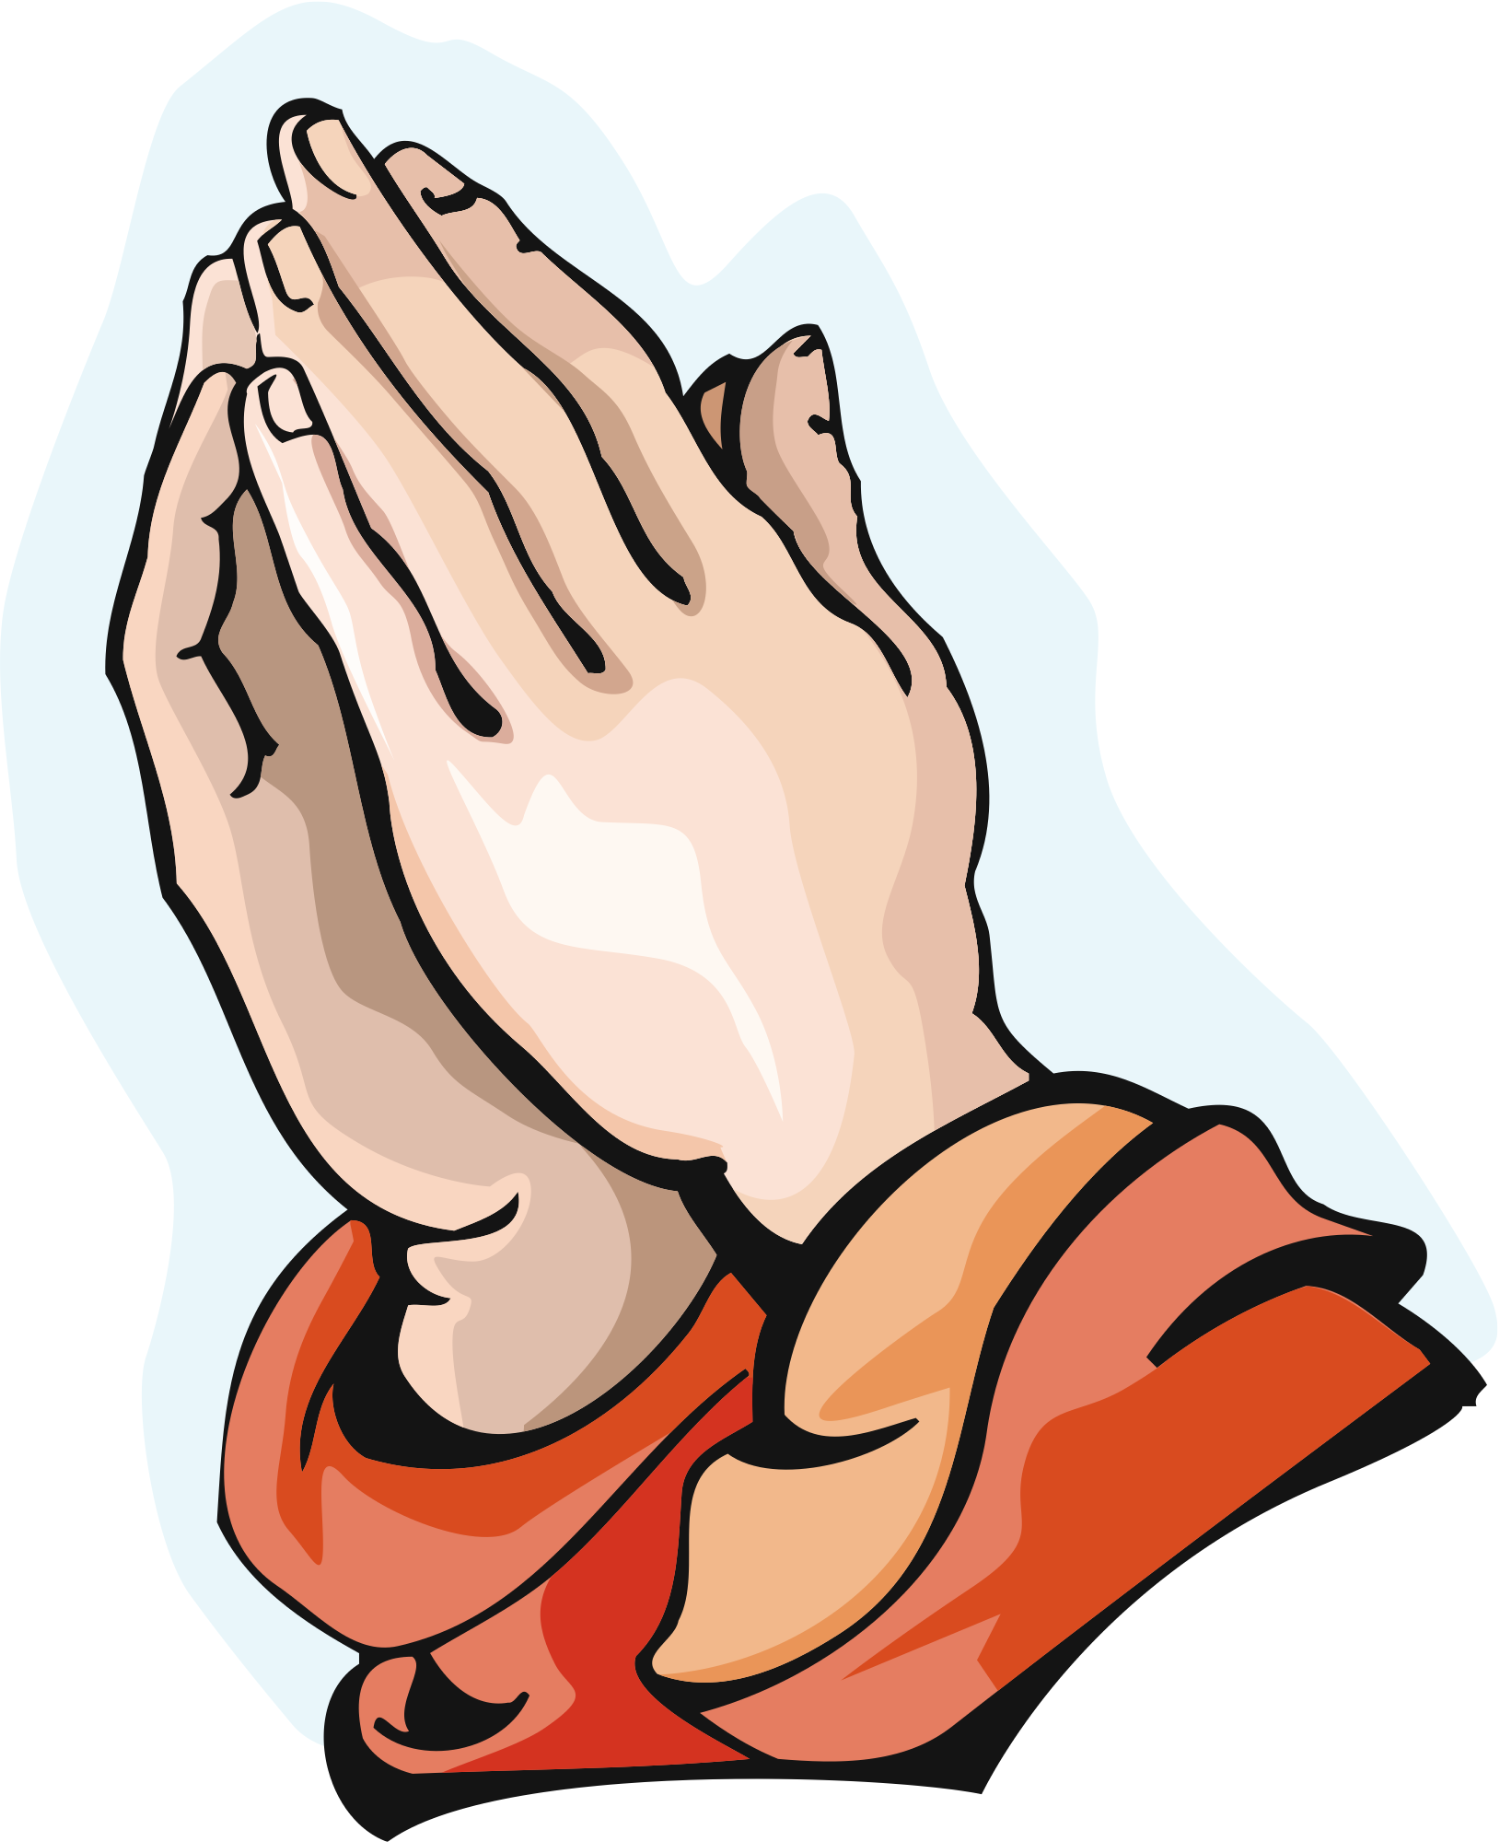 Praying hands 1 free clip art image 2 - Praying Hands PNG HD Images